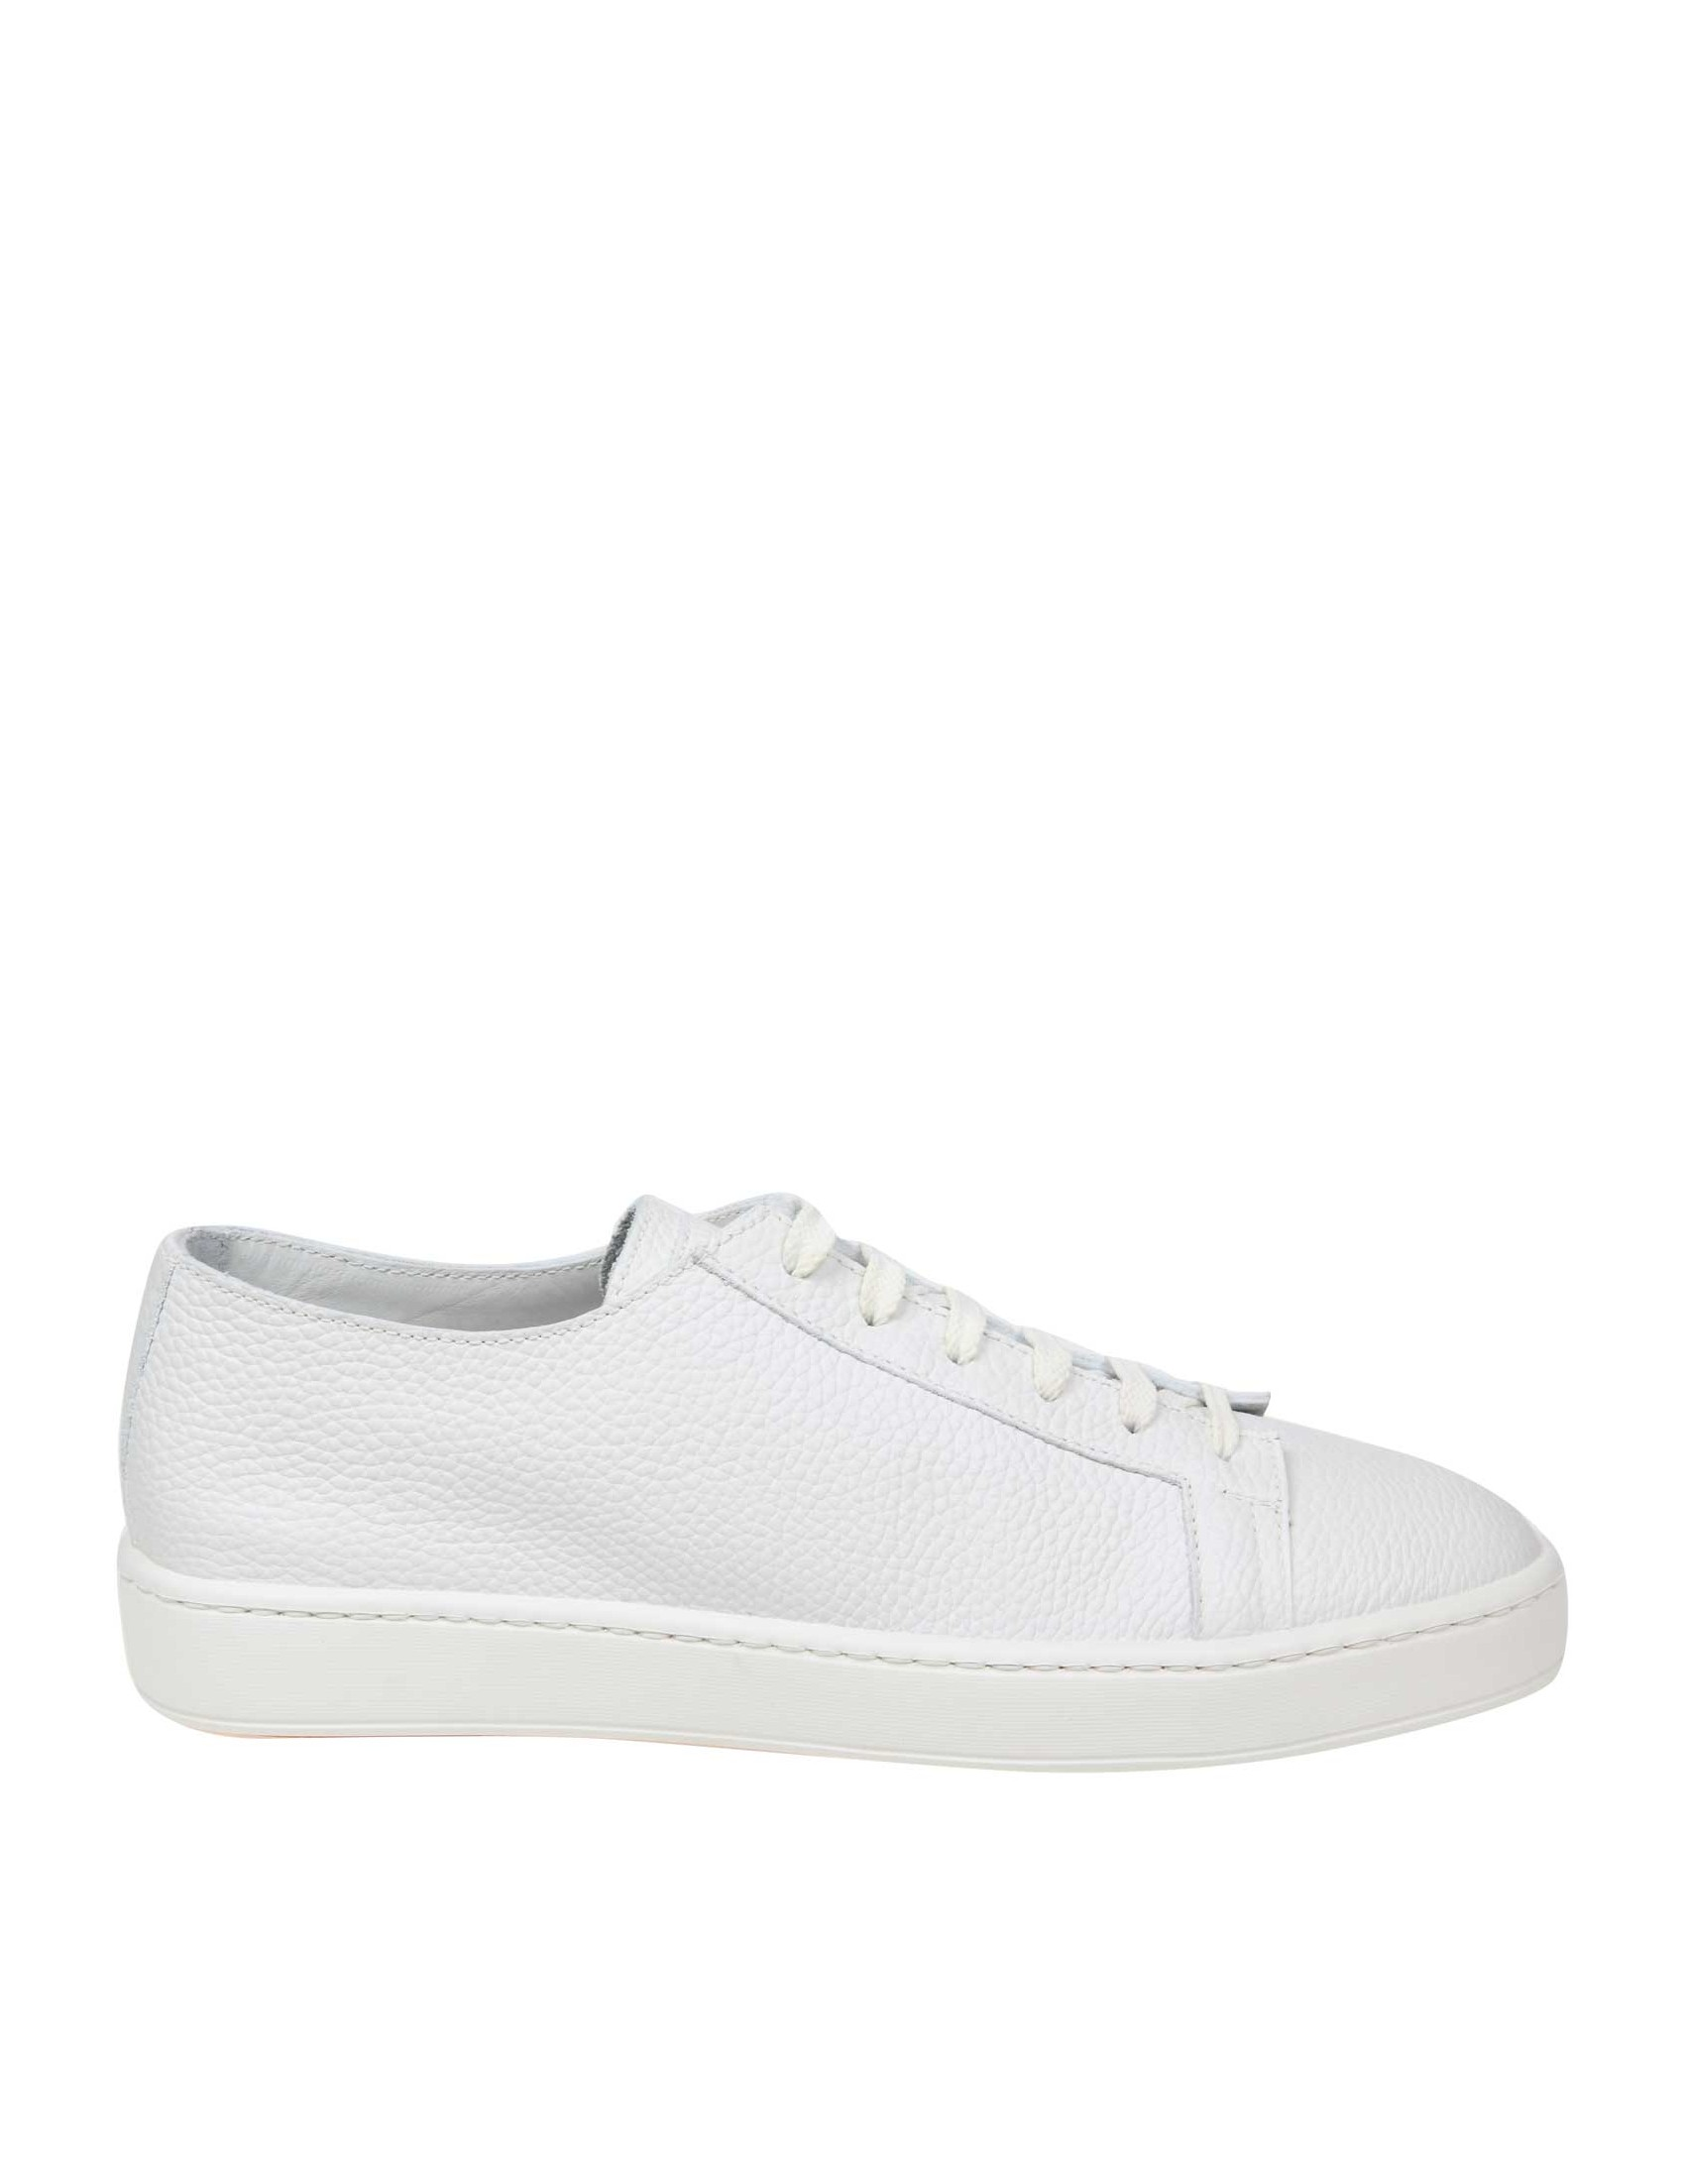 Santoni SNEAKERS LACE-UP IN WHITE LEATHER